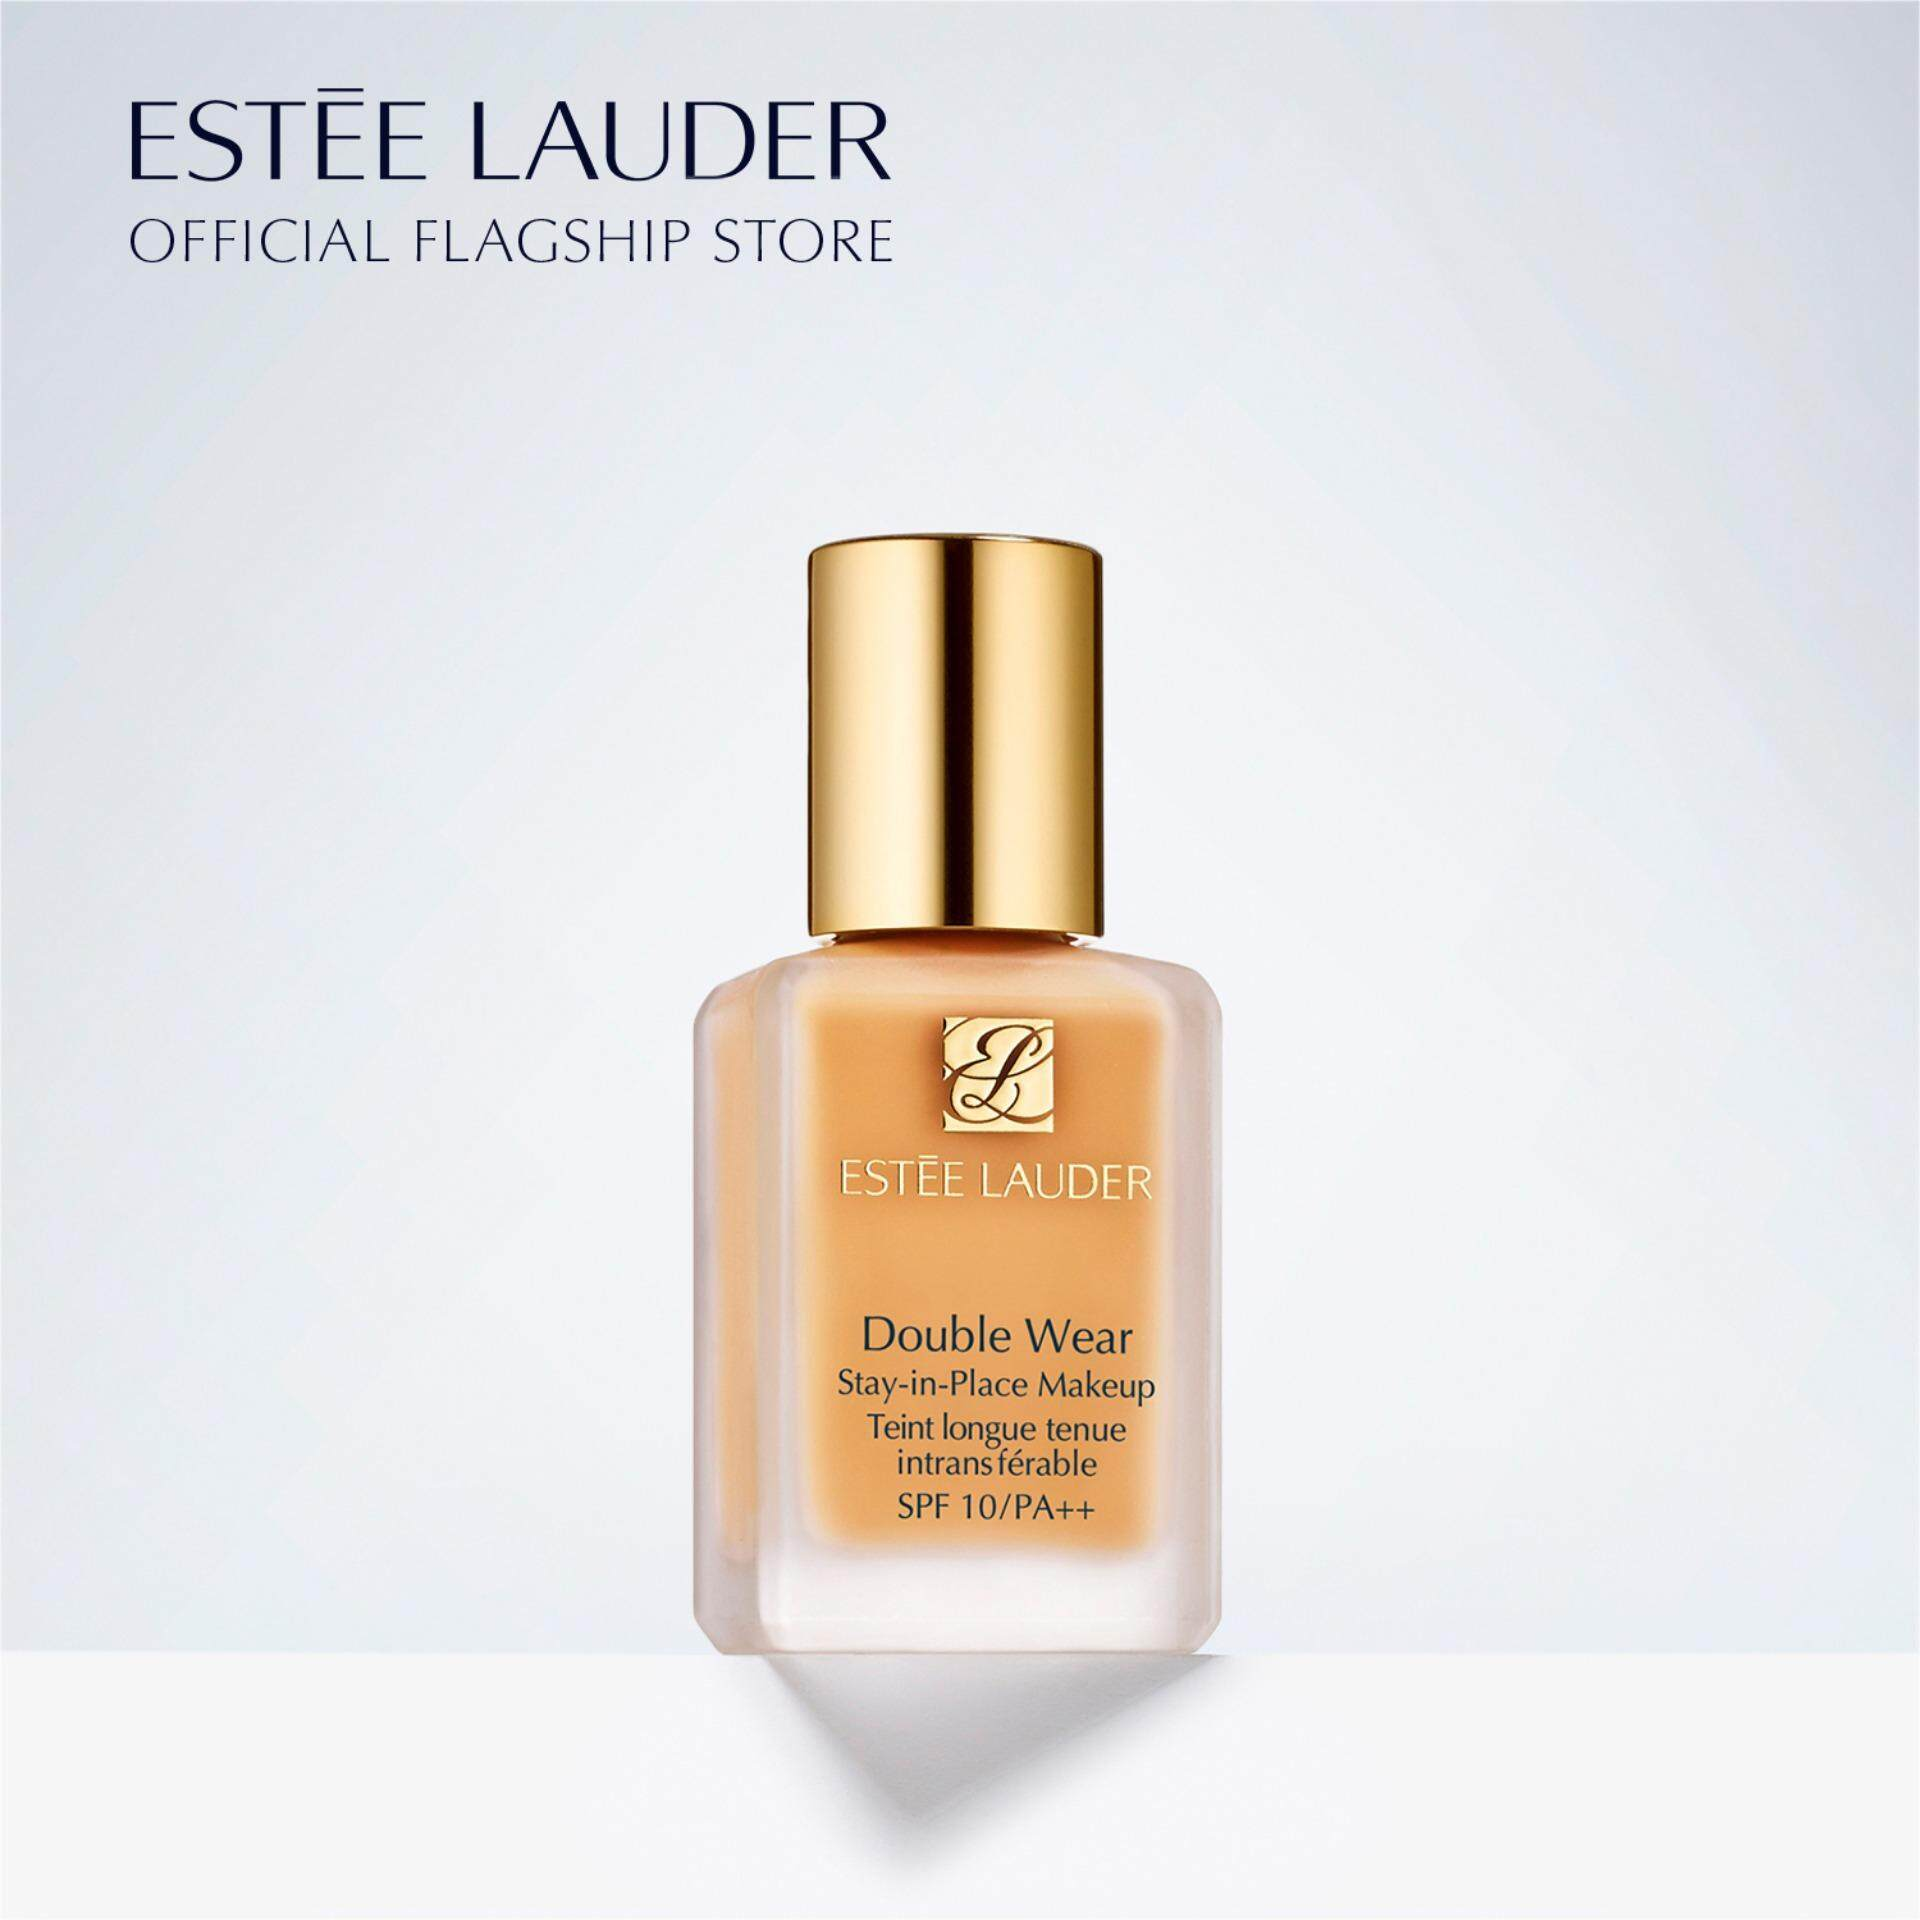 เอสเต ลอเดอร์ Estee Lauder Double Wear Stay-in-Place Makeup SPF 10